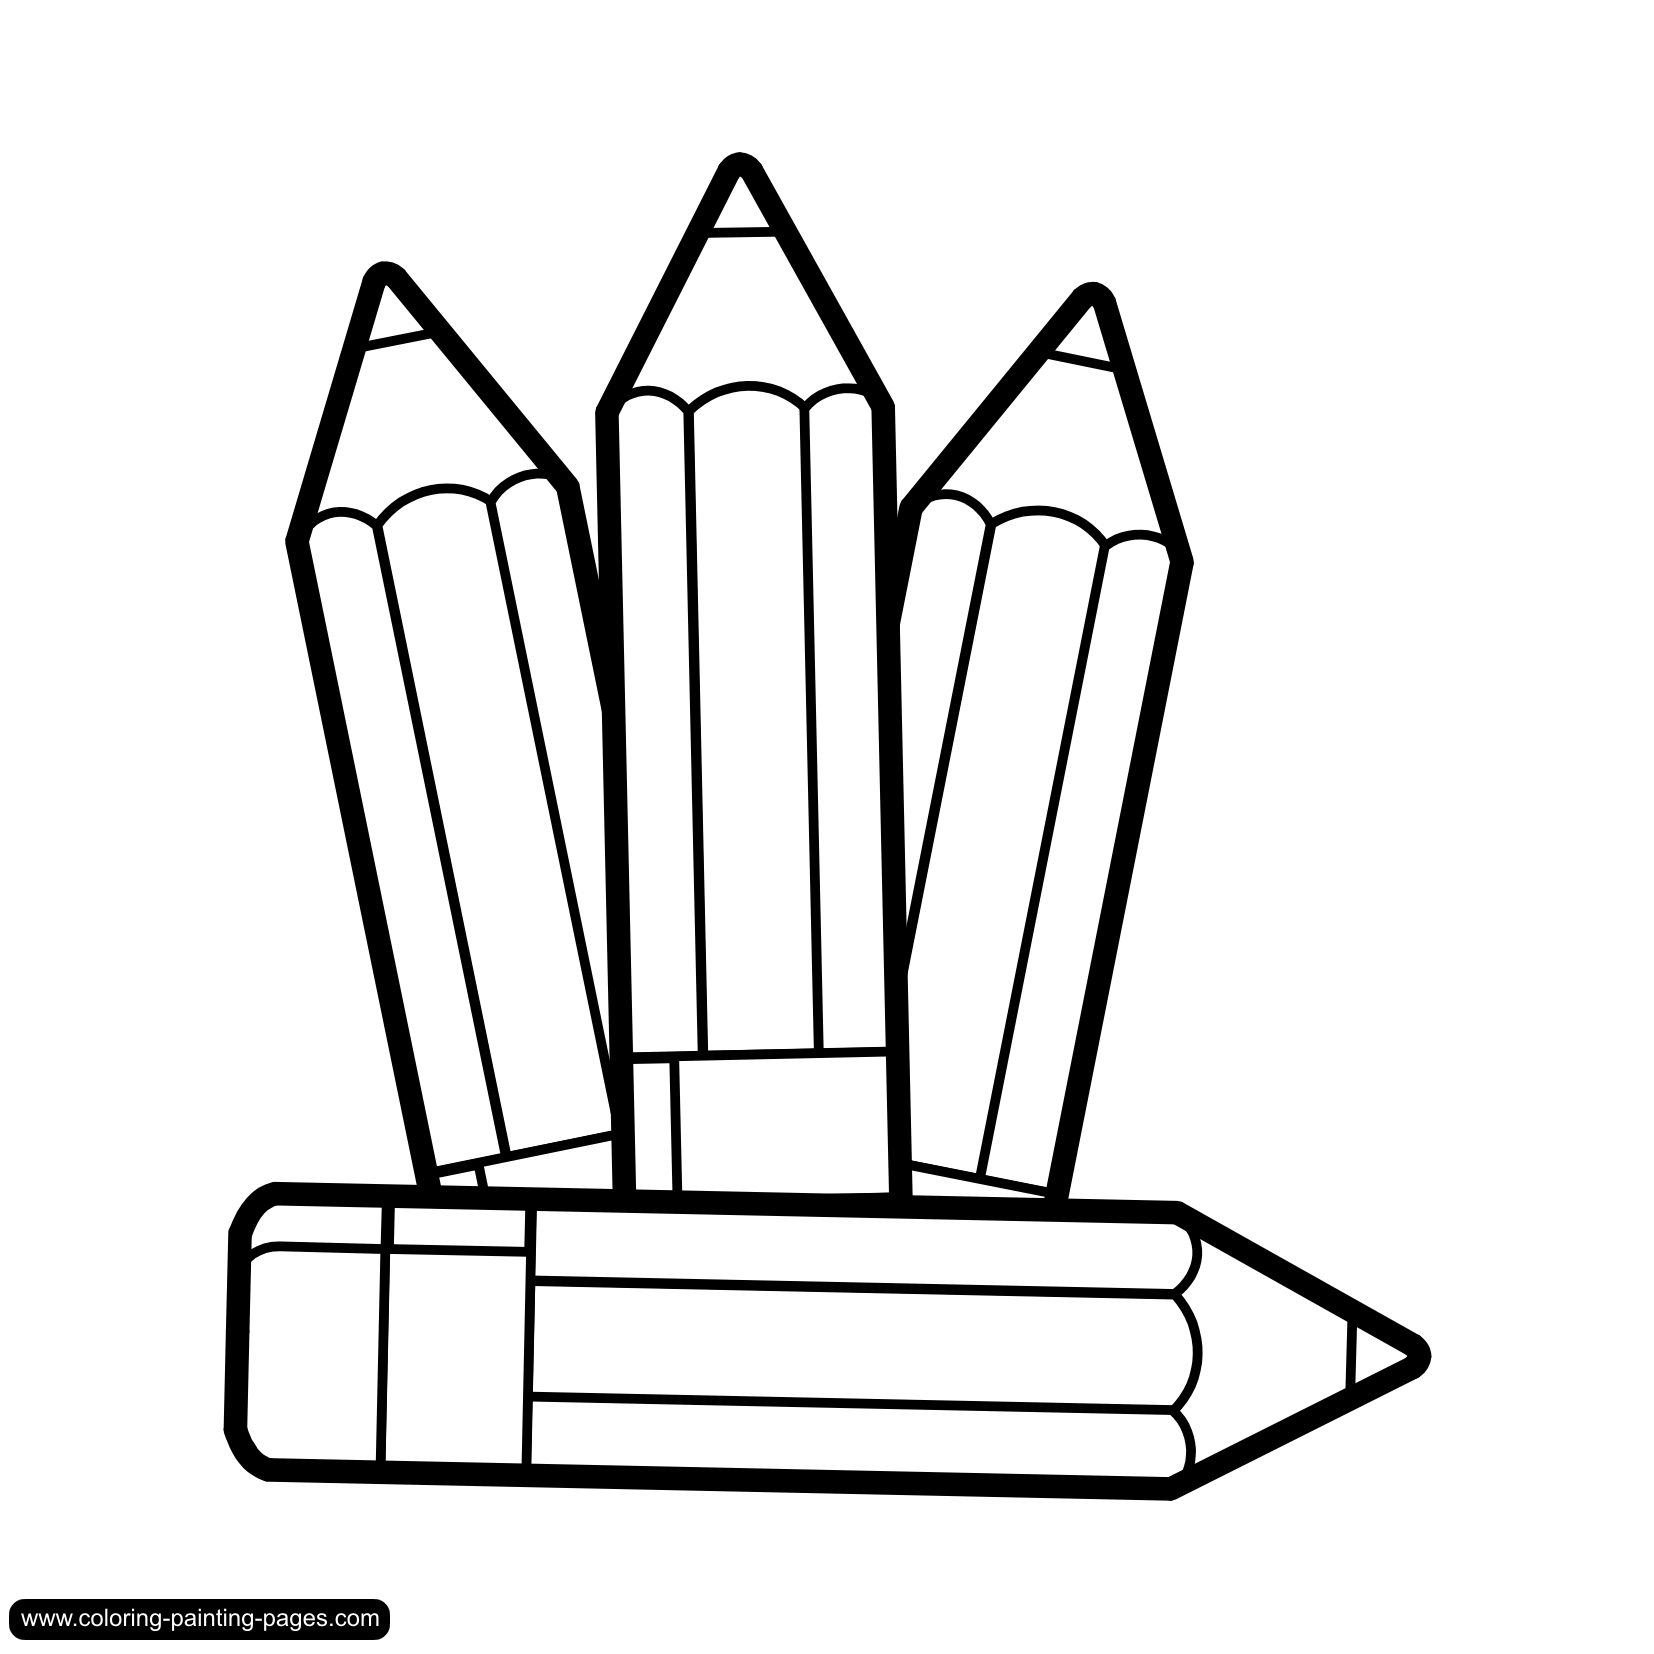 Pencil and crayons clipart in black and white